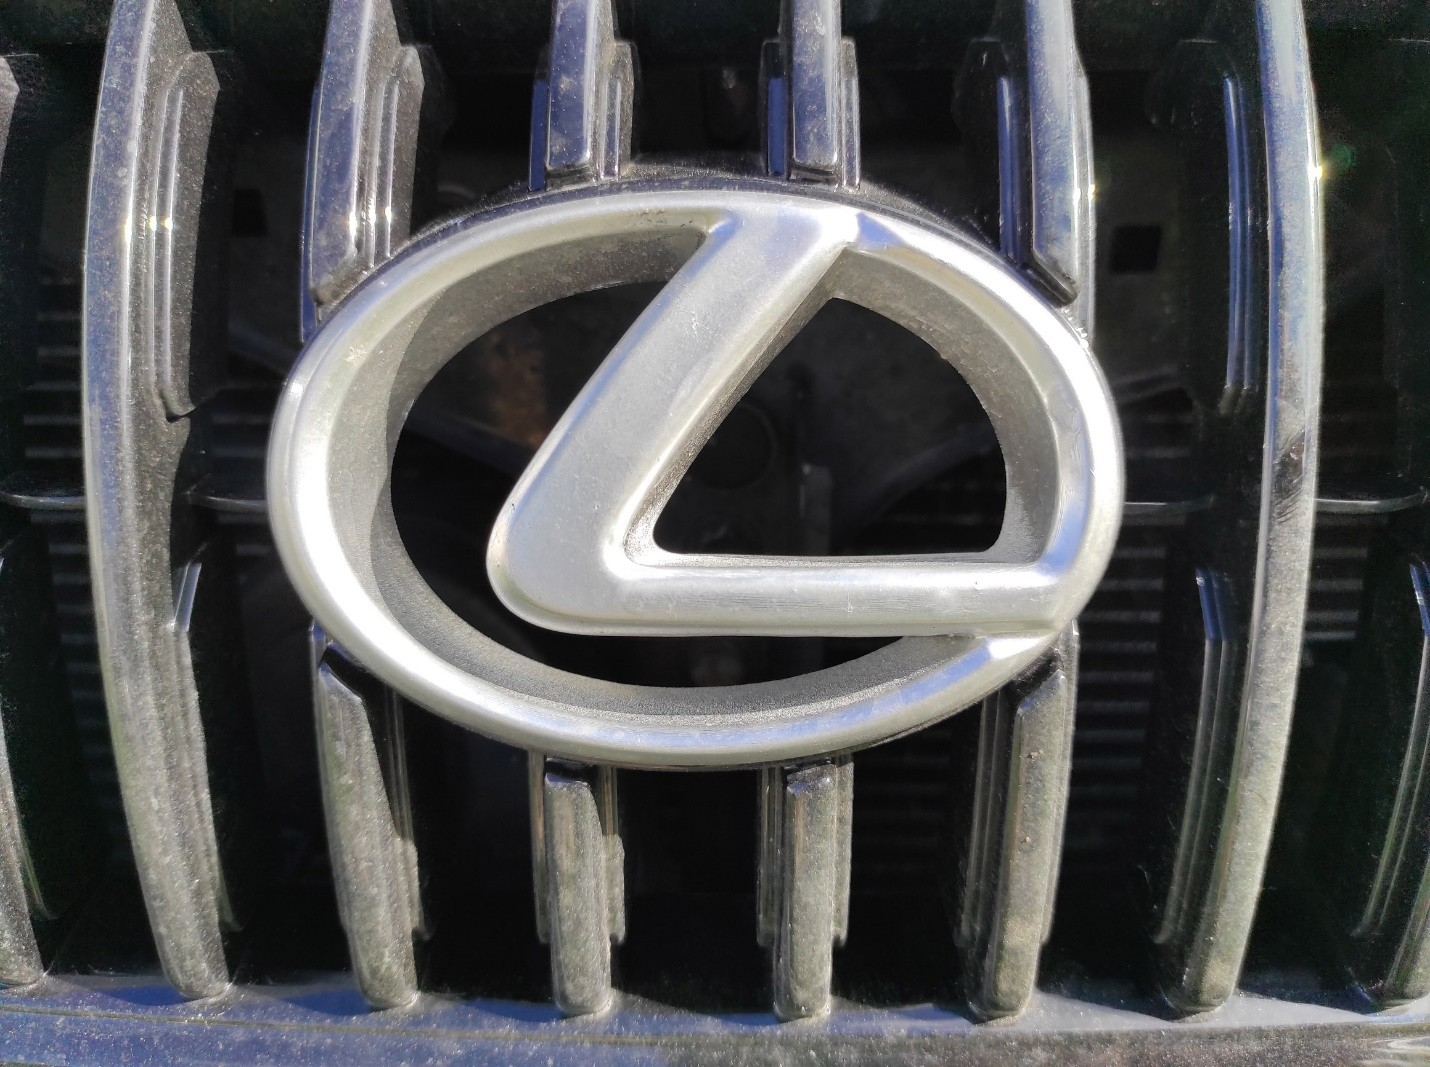 Lexus LOGO in front of the car